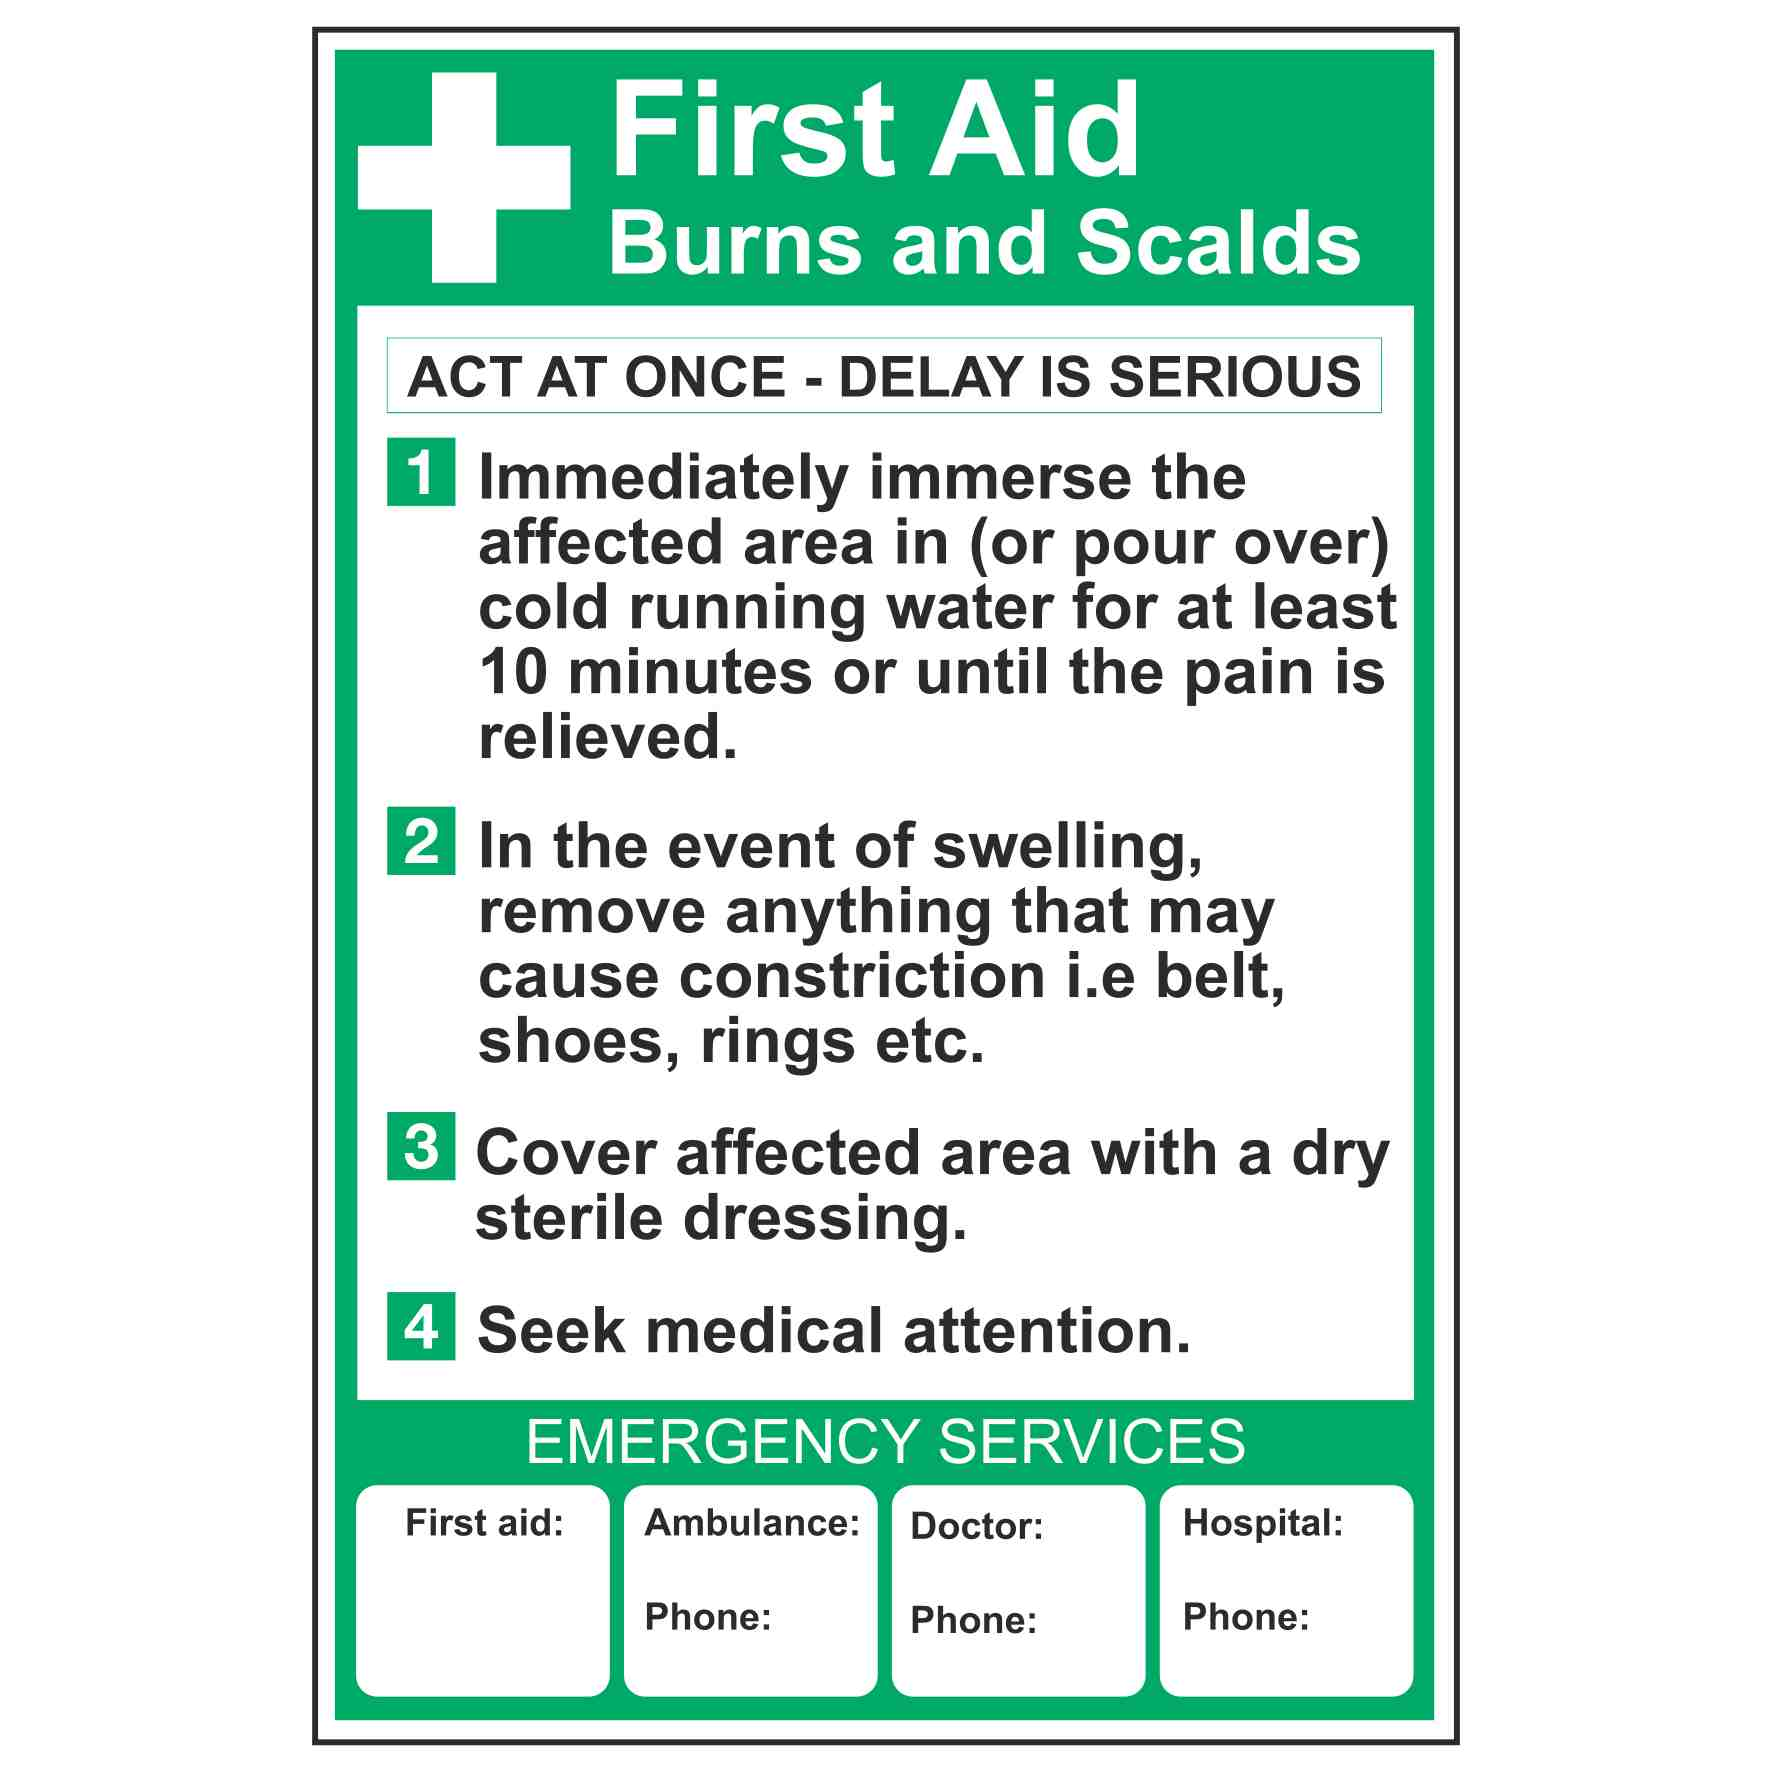 Basic First Aid For Burns